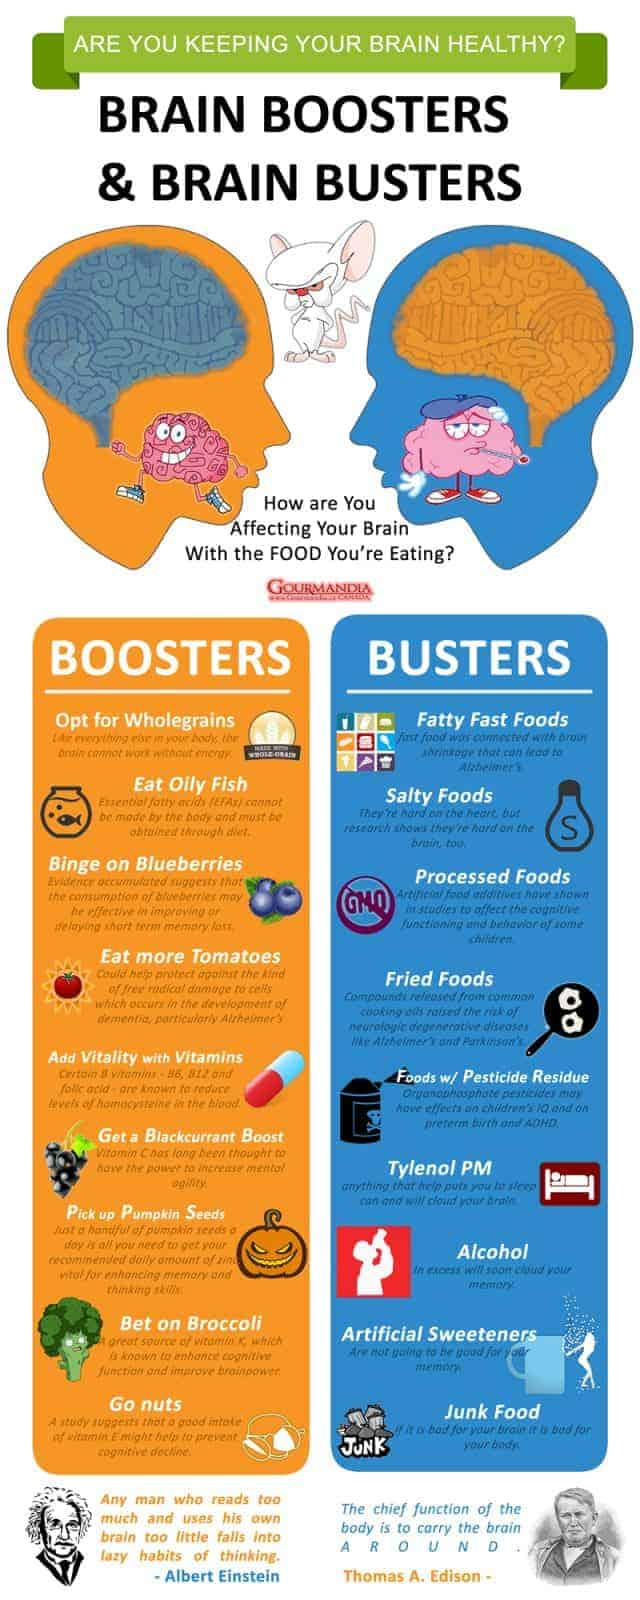 brain-boosters-and-brain-busters_523ac6280e90f